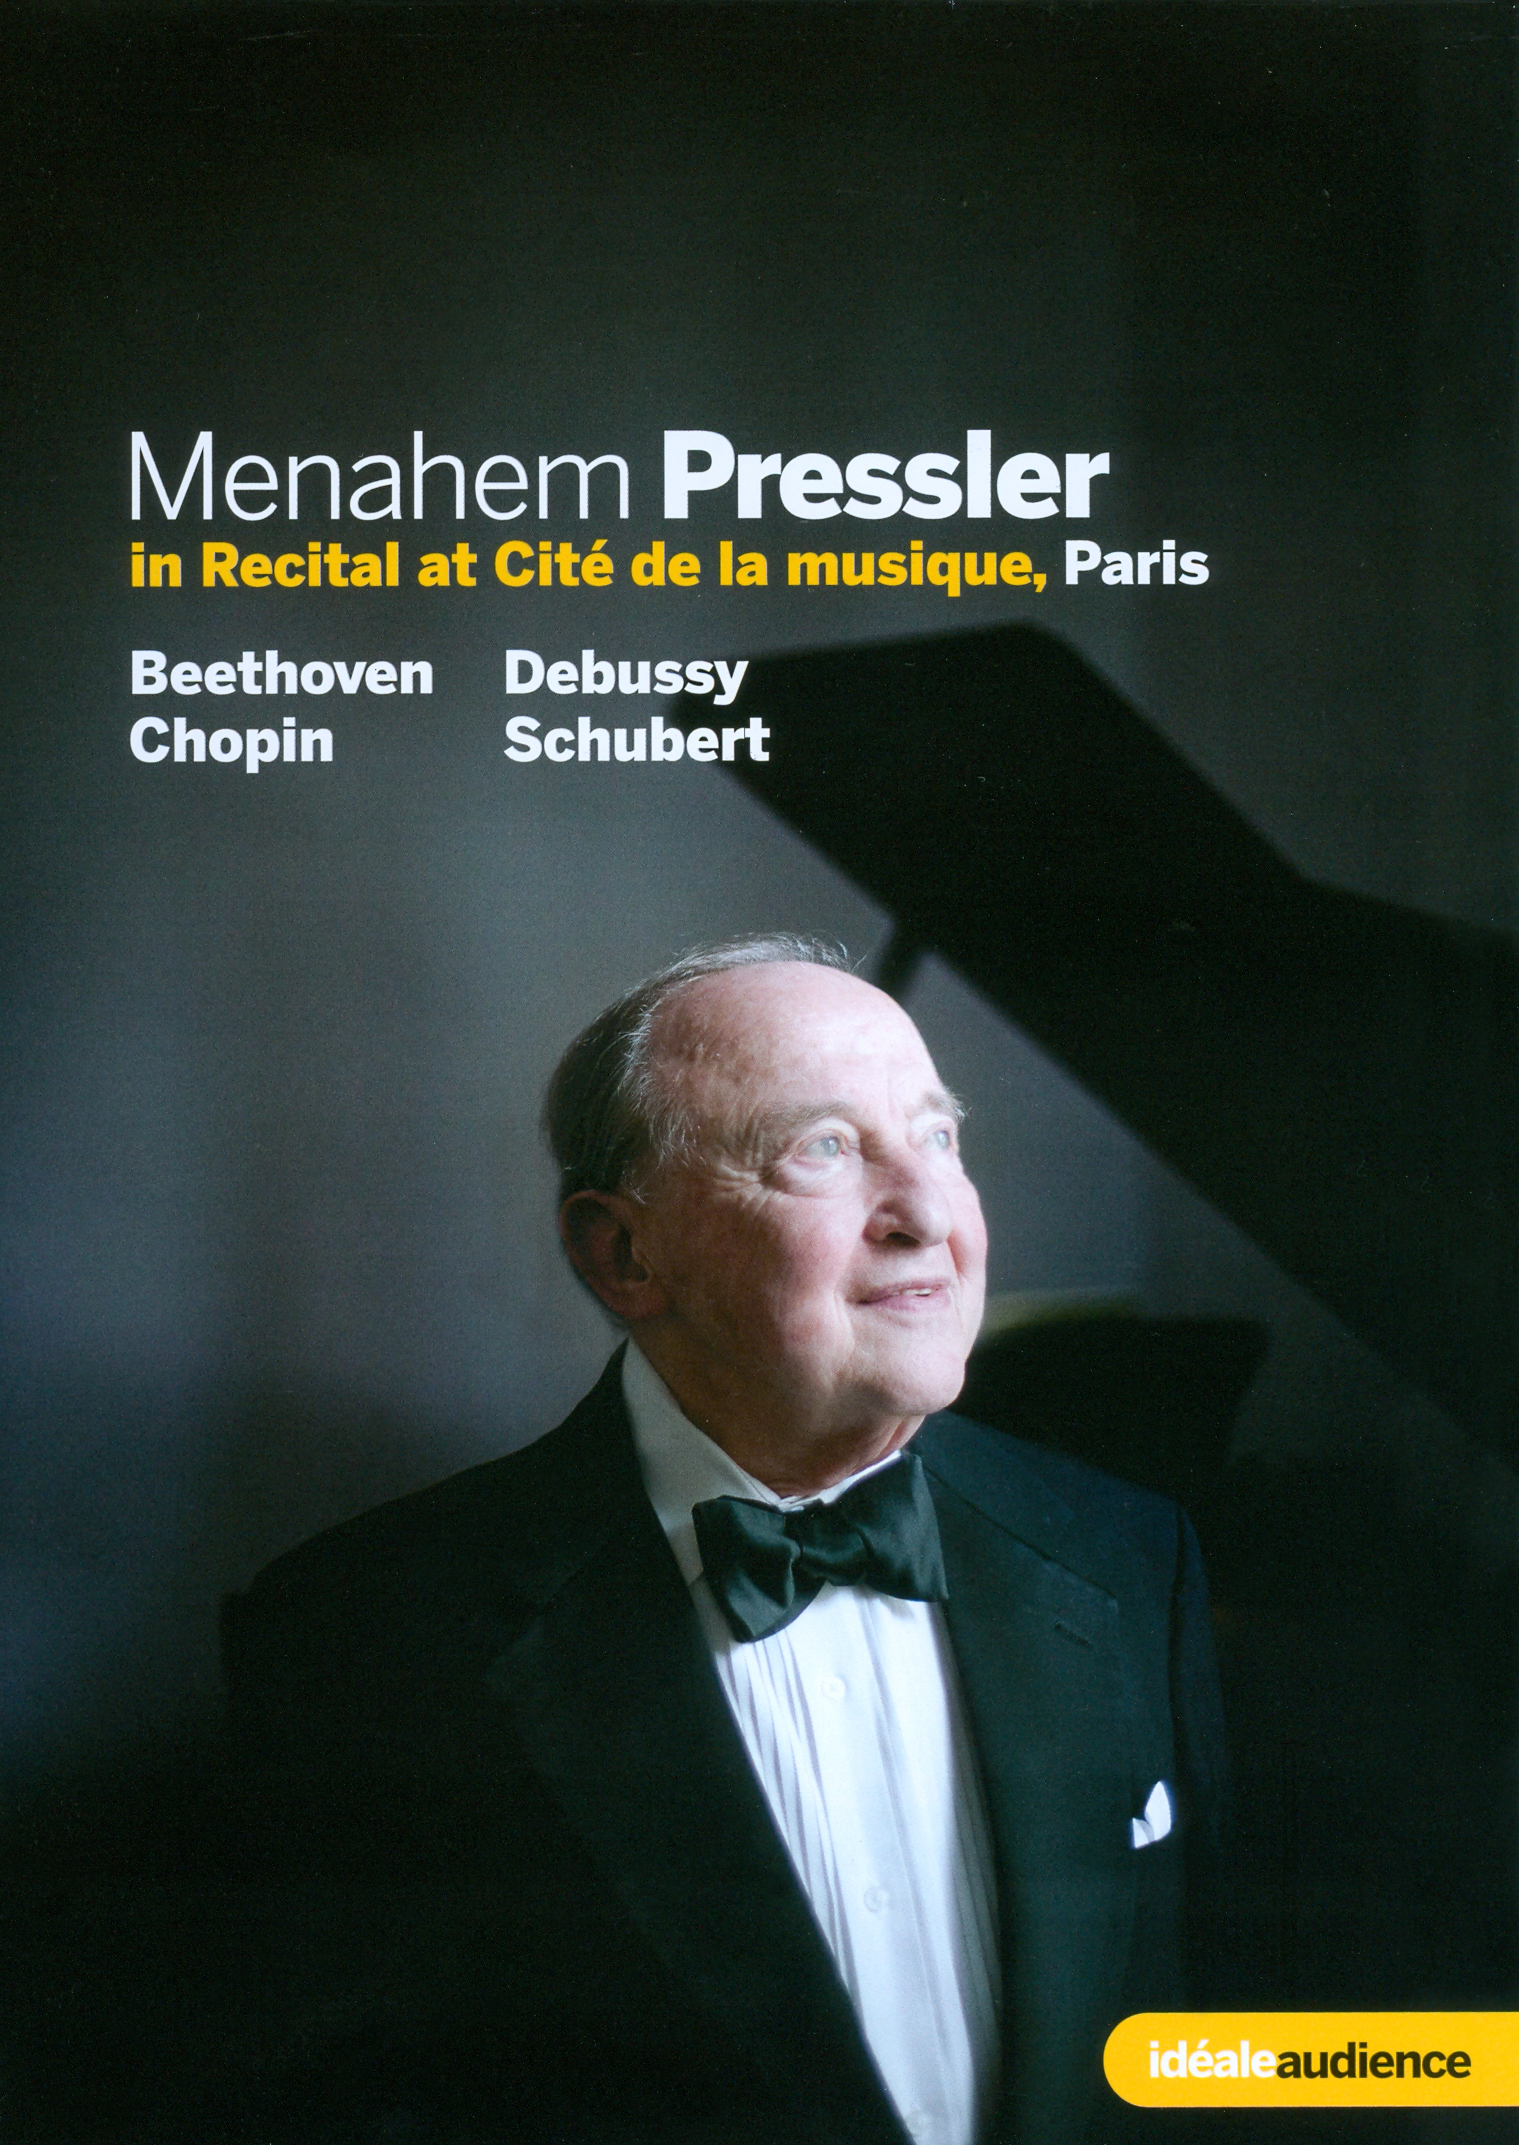 Menahem Pressler: In Recital at Cité de la Musique, Paris